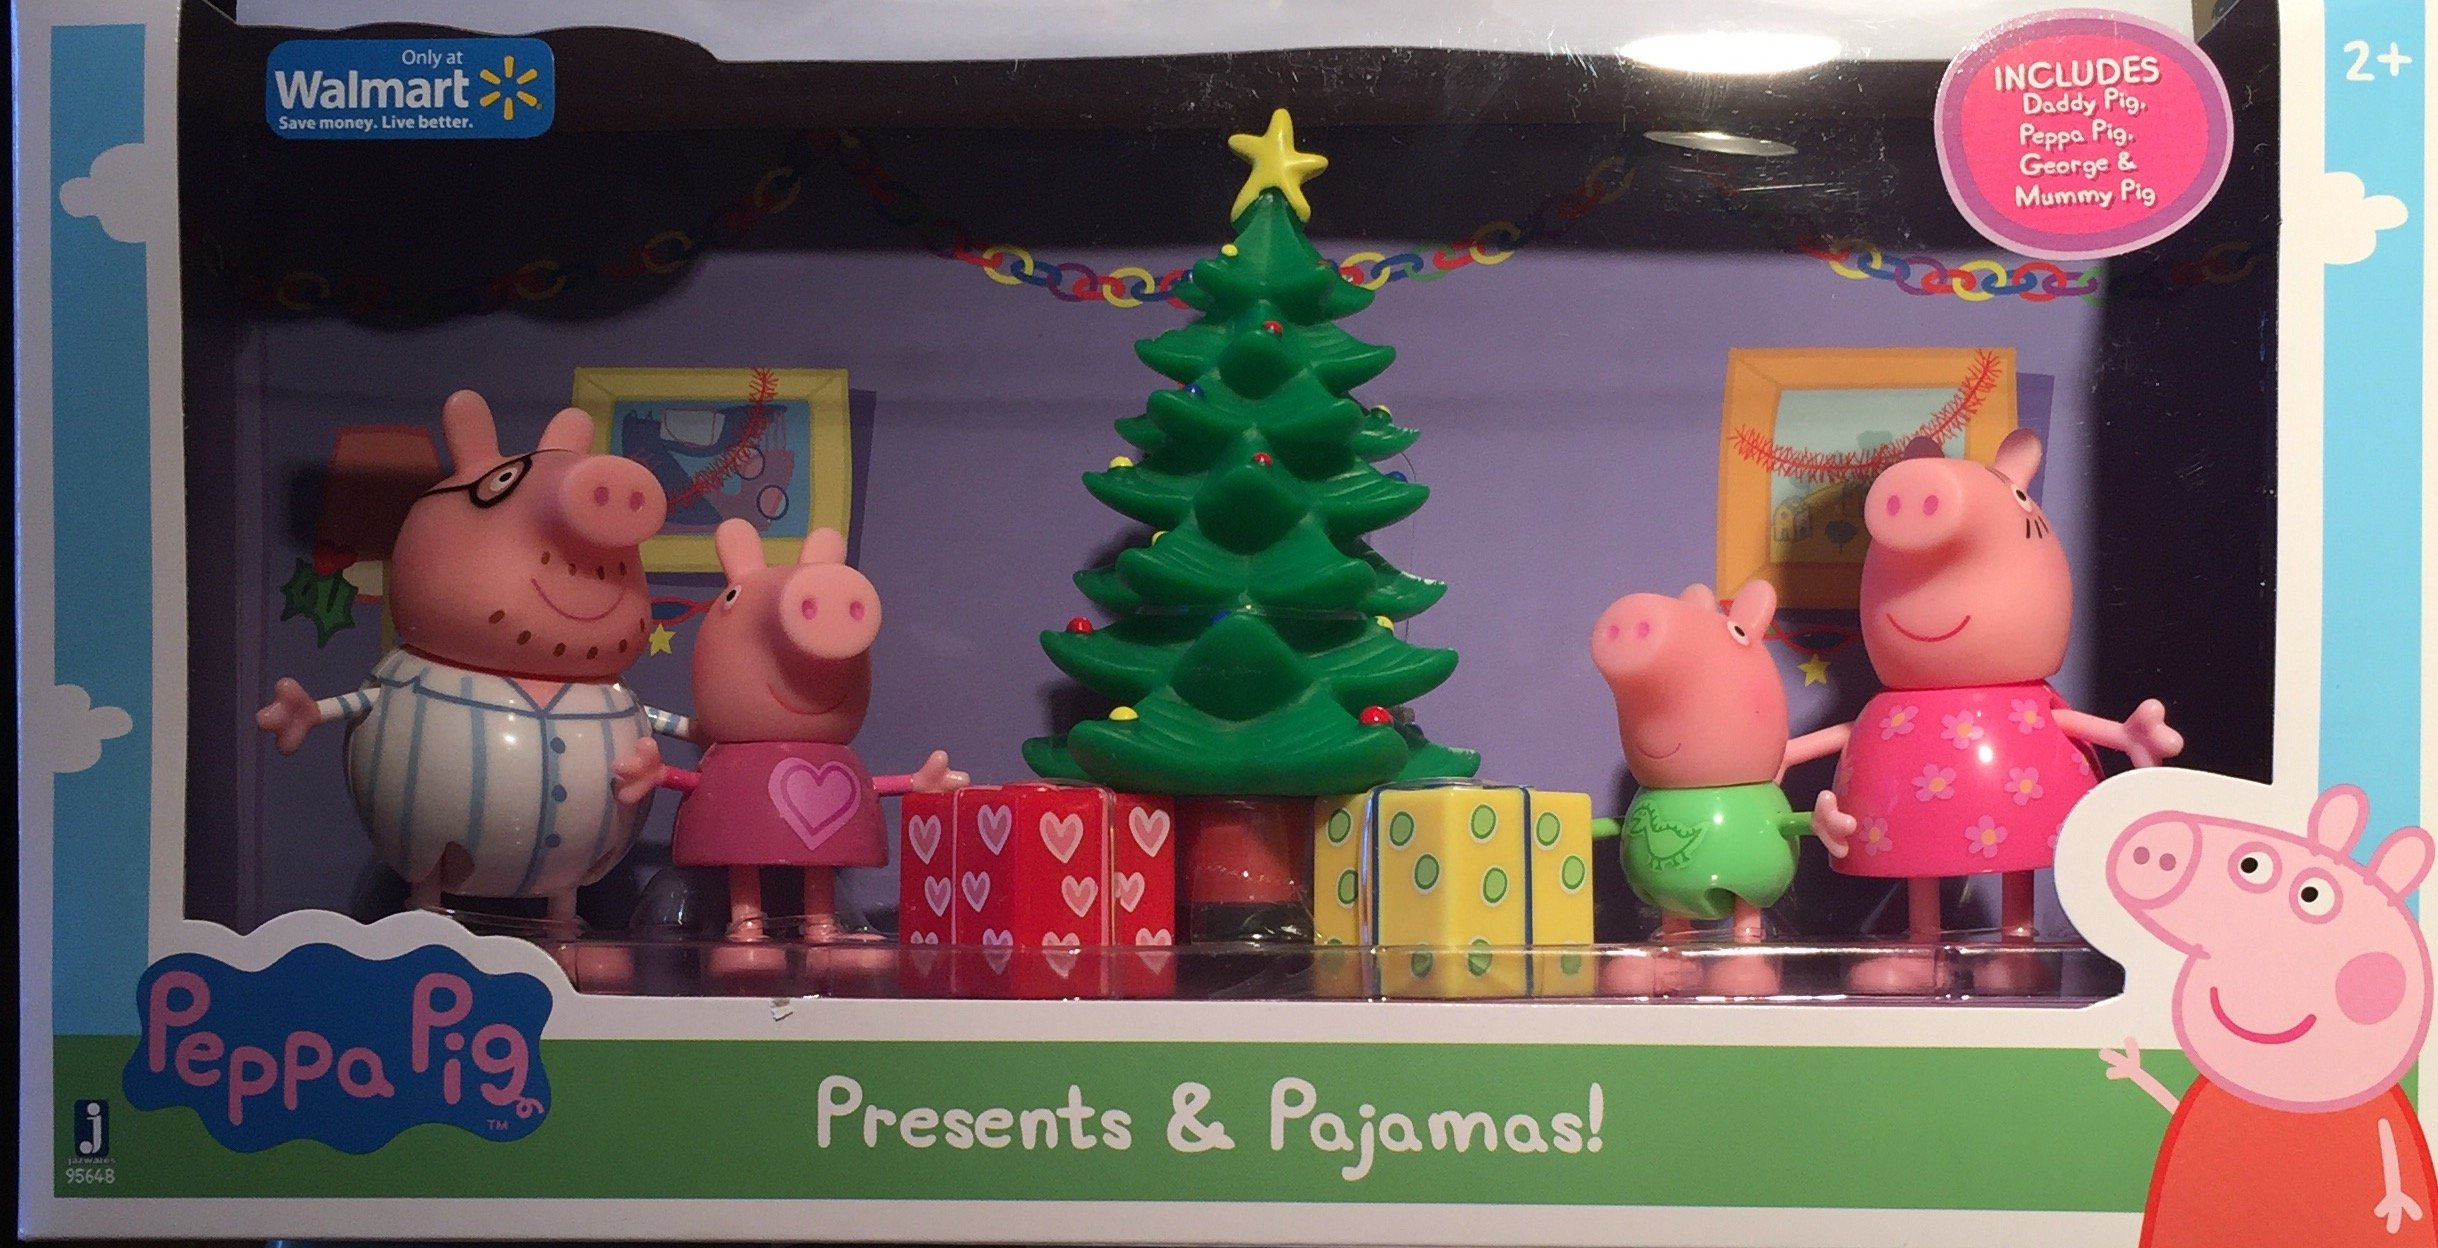 peppa pig christmas presents and pajamas exclusive set with family